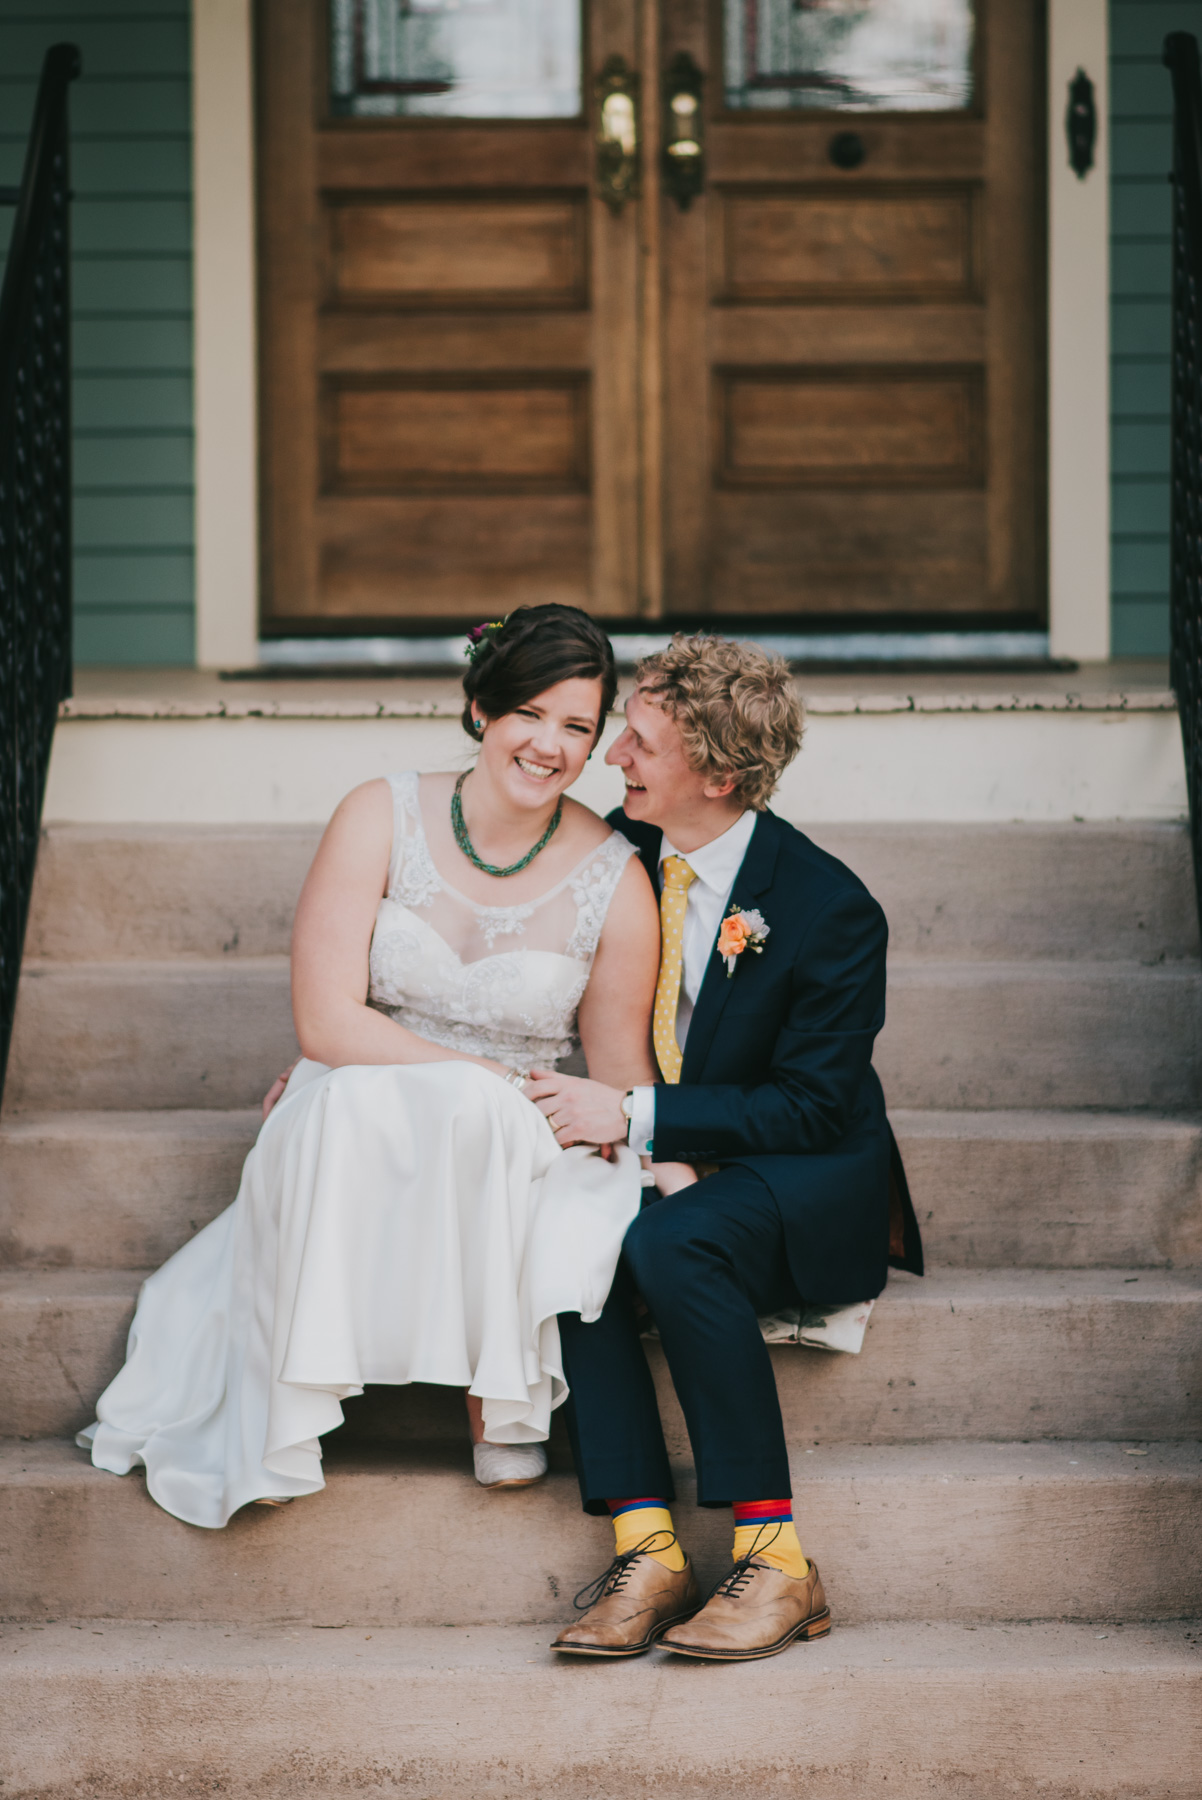 Casey and Matthew were two of my most fun couples this year. I laughed a ton, and their positive attitudes were contagious! They are sitting on the back steps of the Tapestry House in Fort Collins, Colorado on their wedding day. I love the grooms yellow, fun socks!